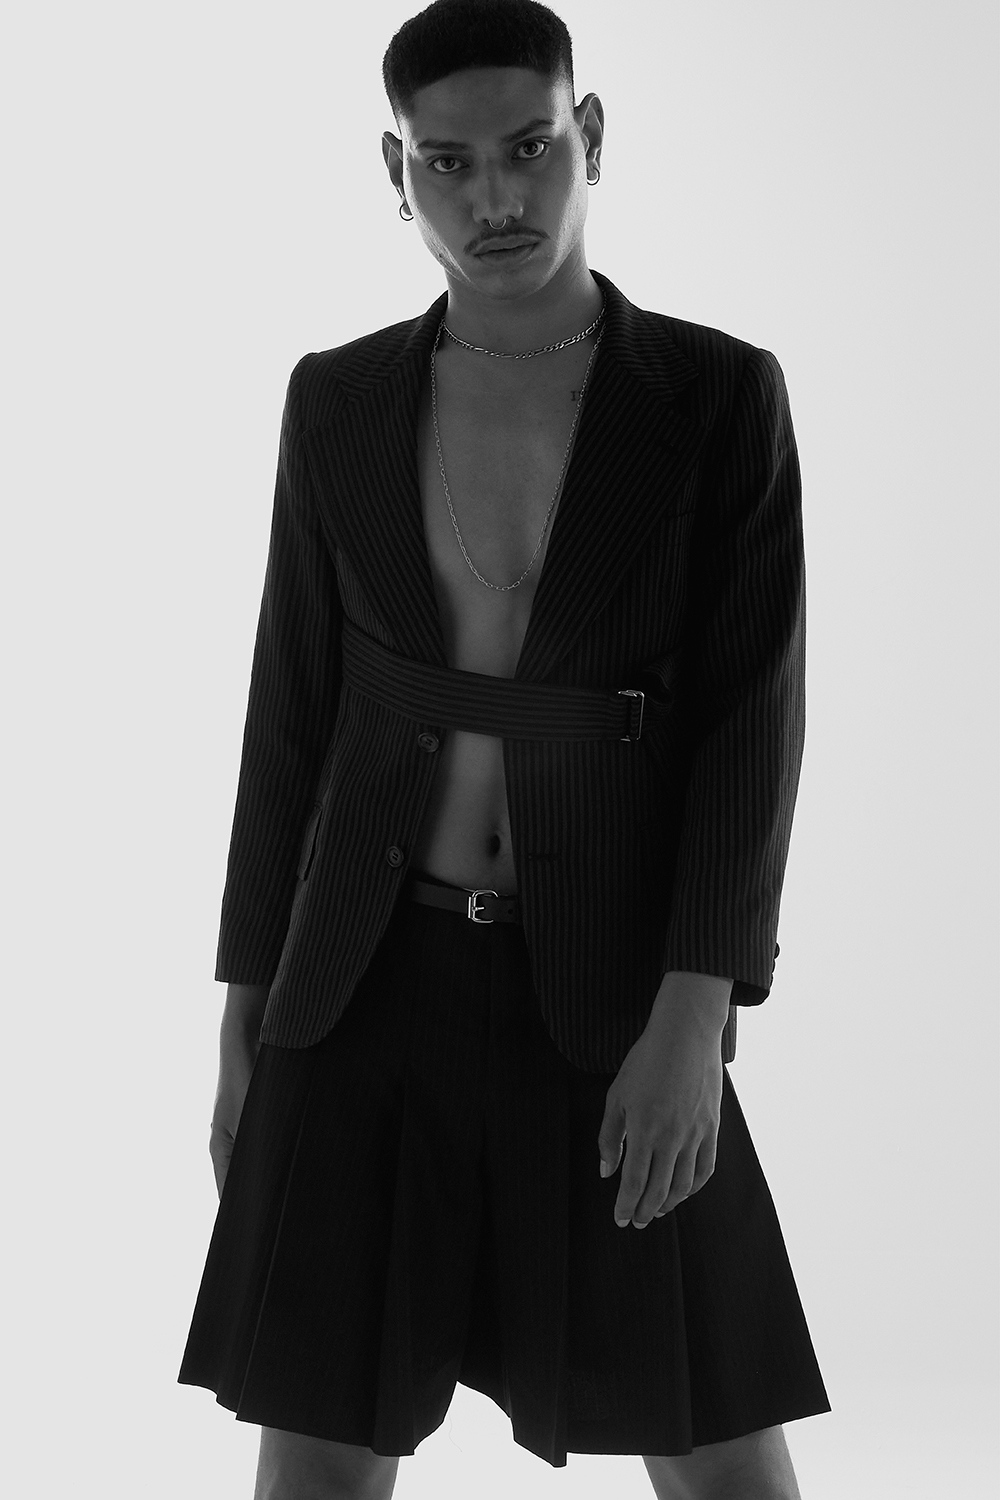 Sione Tuitavake wearing Comme Des Garcons for Astrophe Homme fashion editorial by Aaron VIII